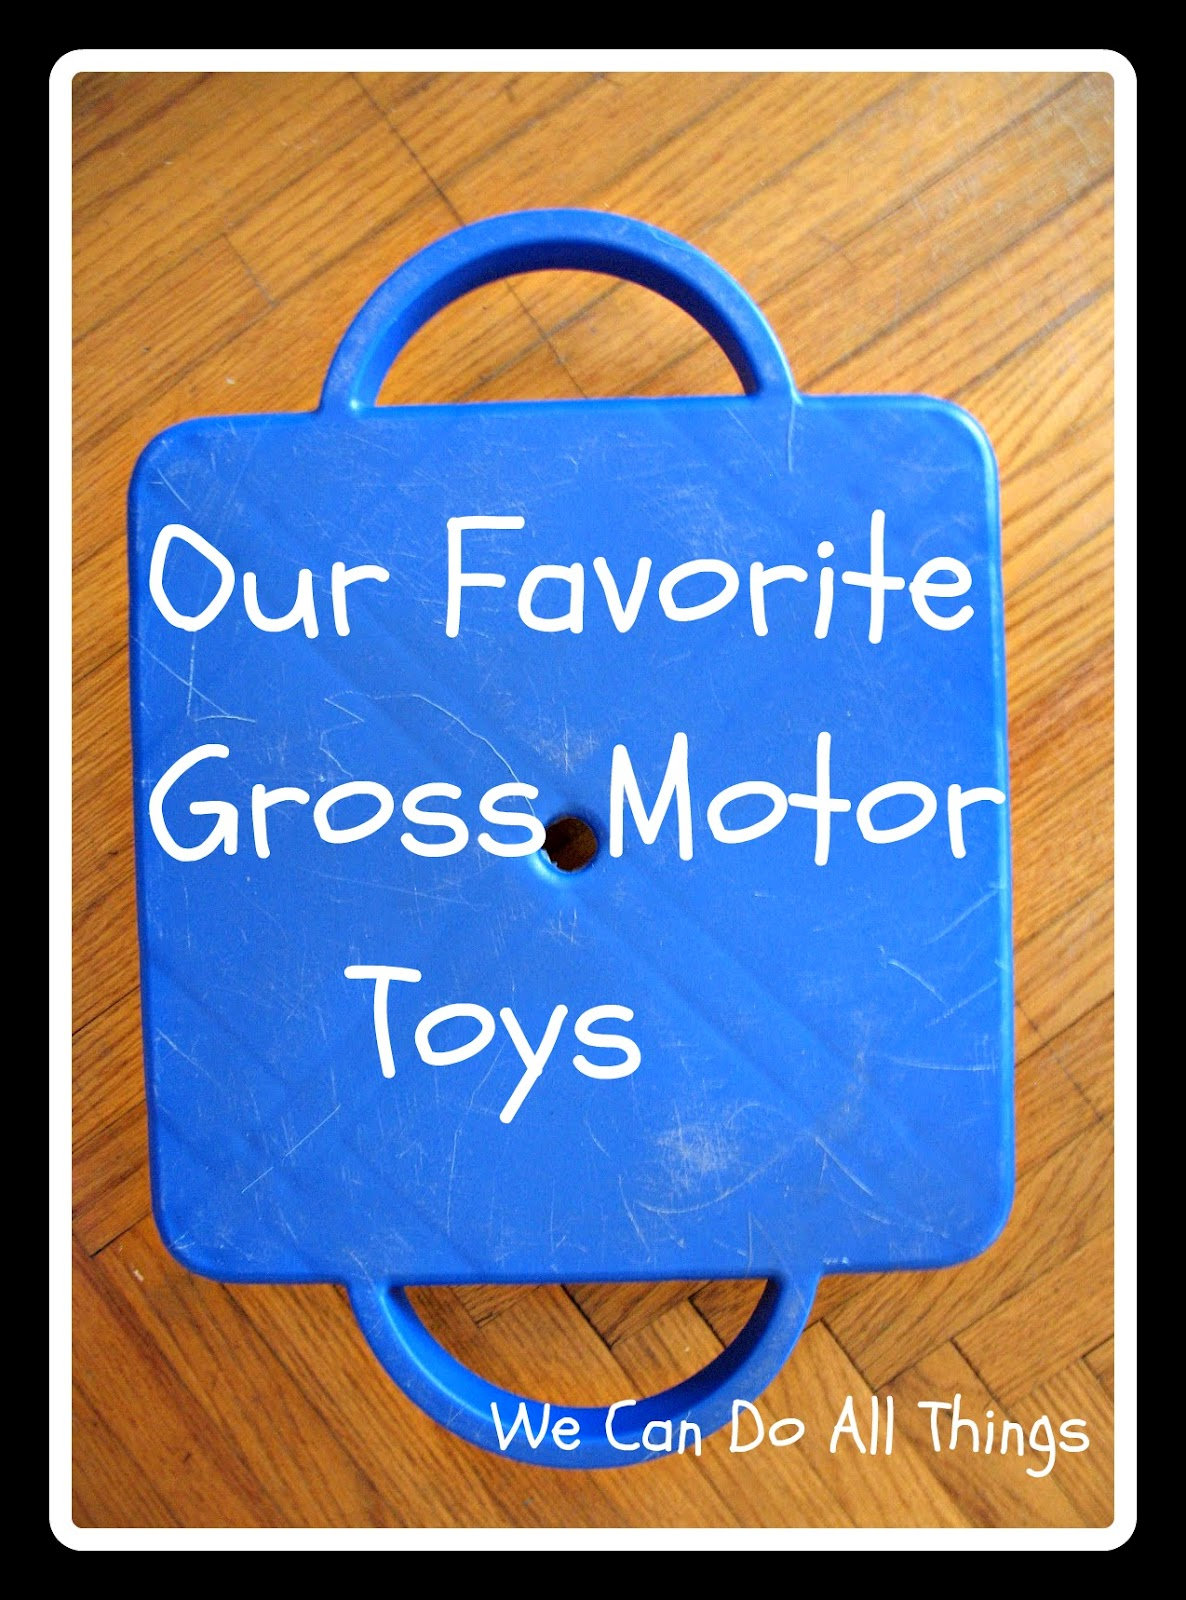 Gross Motor Toys : We can do all things our favorite gross motor toys